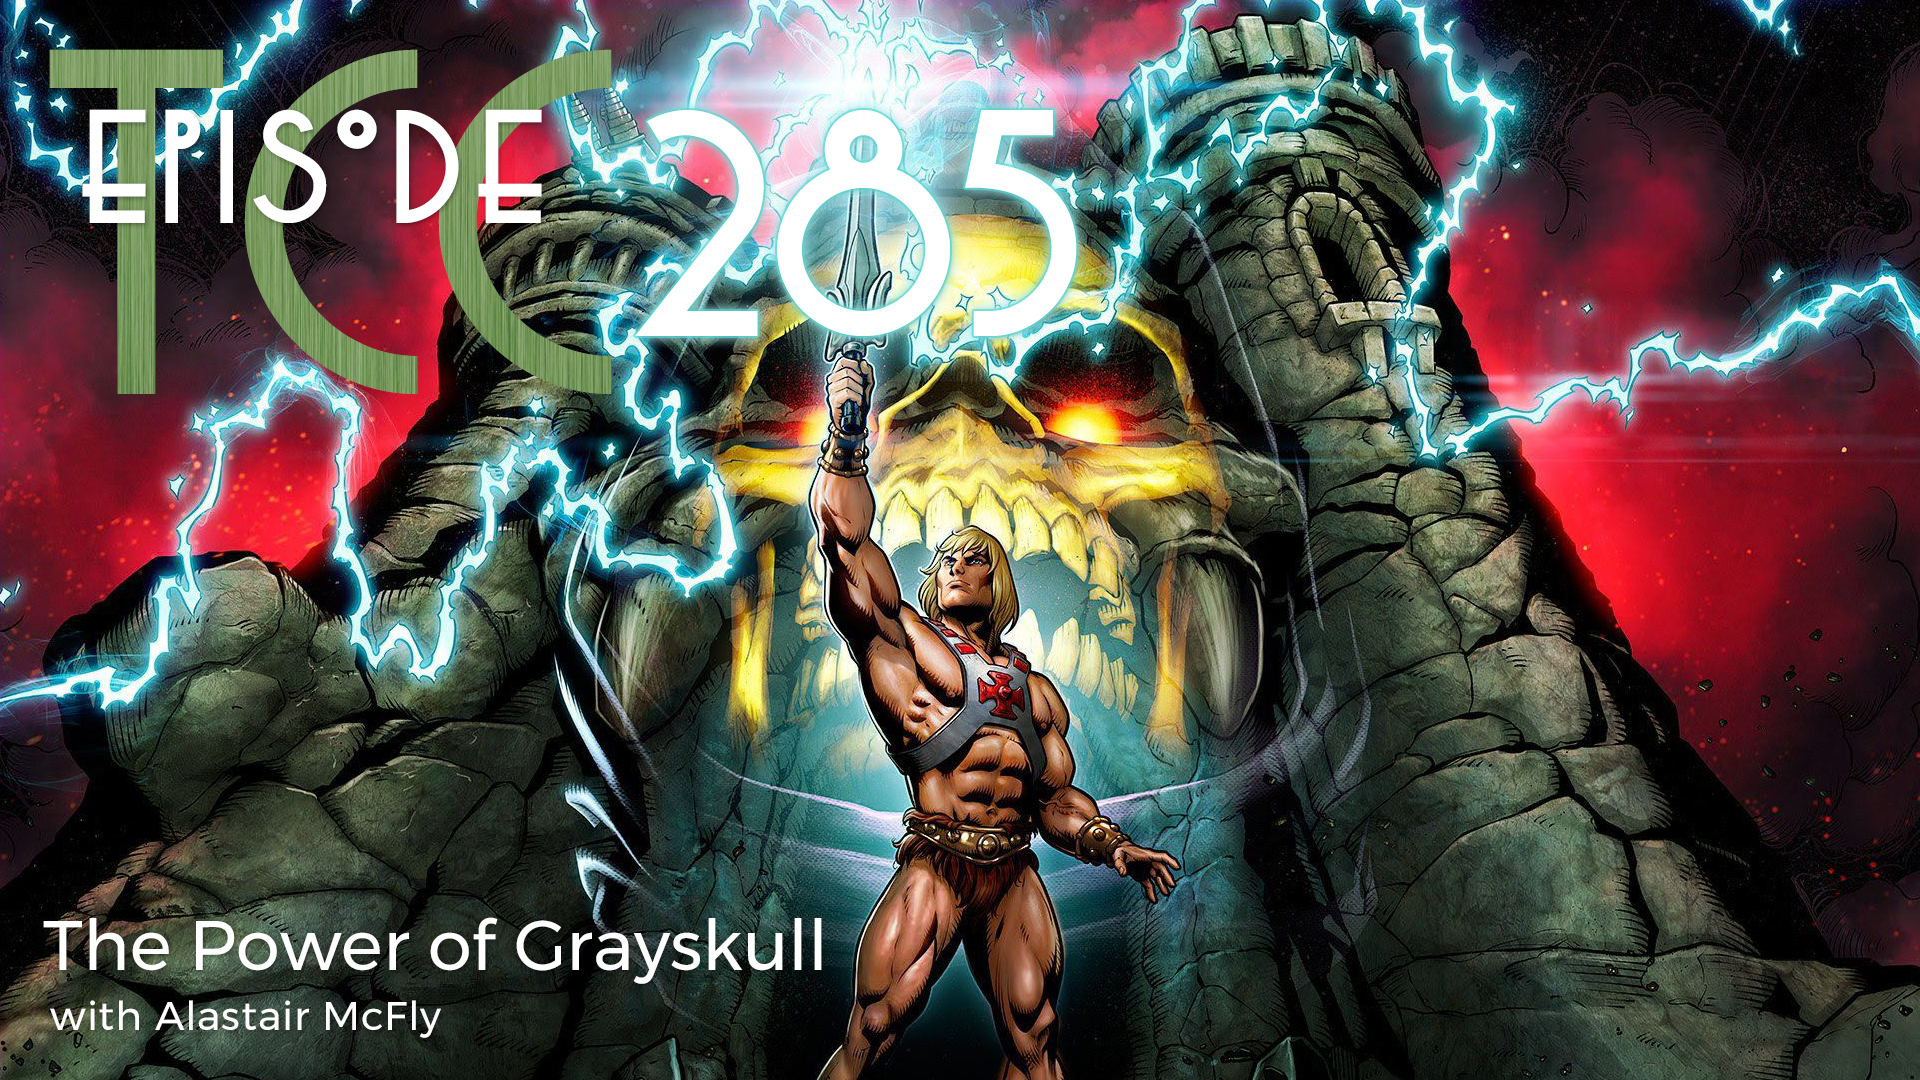 The Citadel Cafe 285: The Power of Grayskull